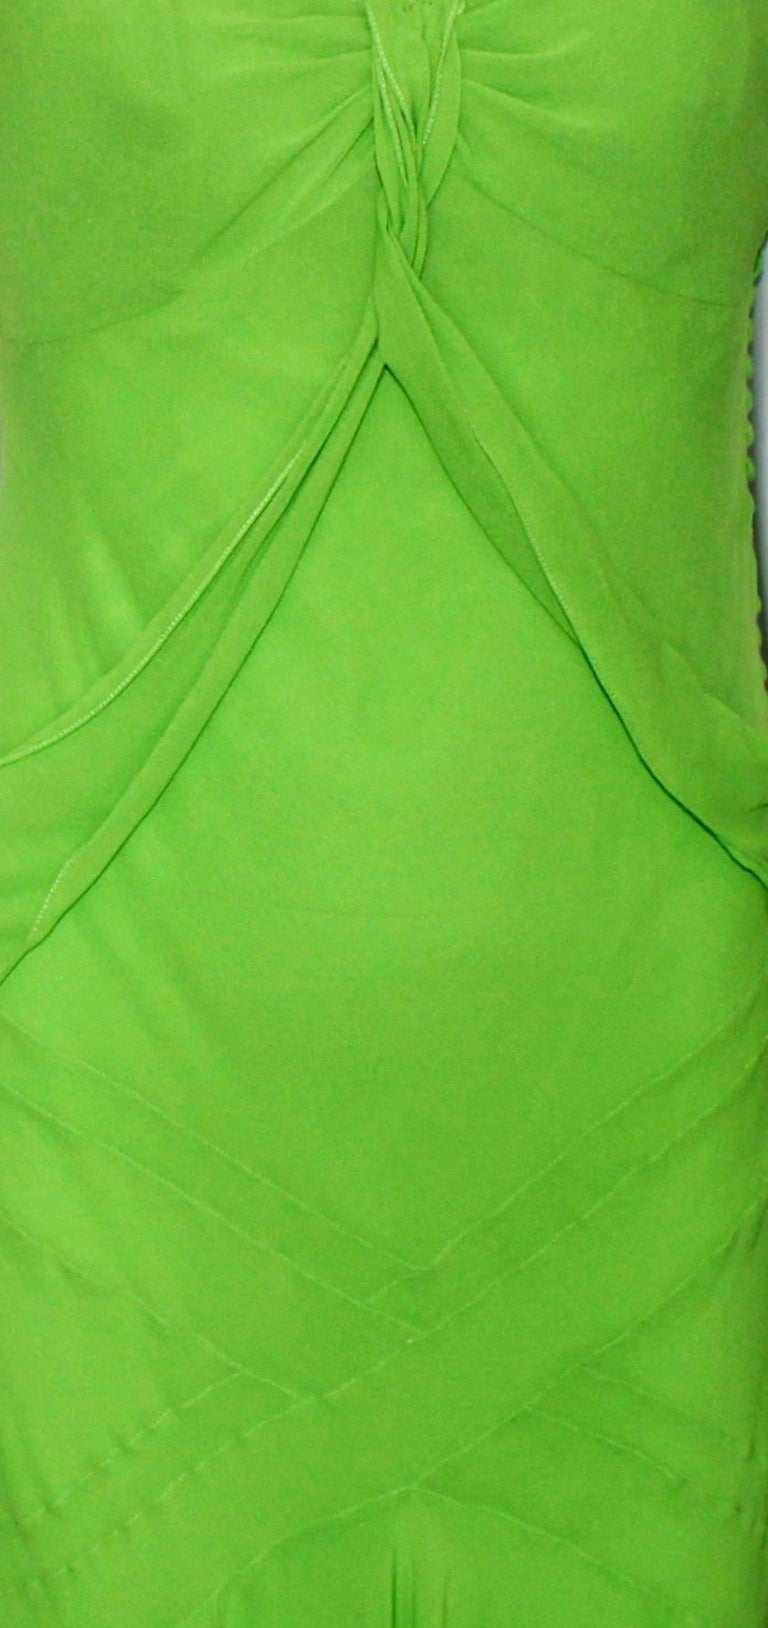 UNWORN Christian Dior by John Galliano Green Draped Silk Chiffon Dress Gown In Good Condition For Sale In Switzerland, CH